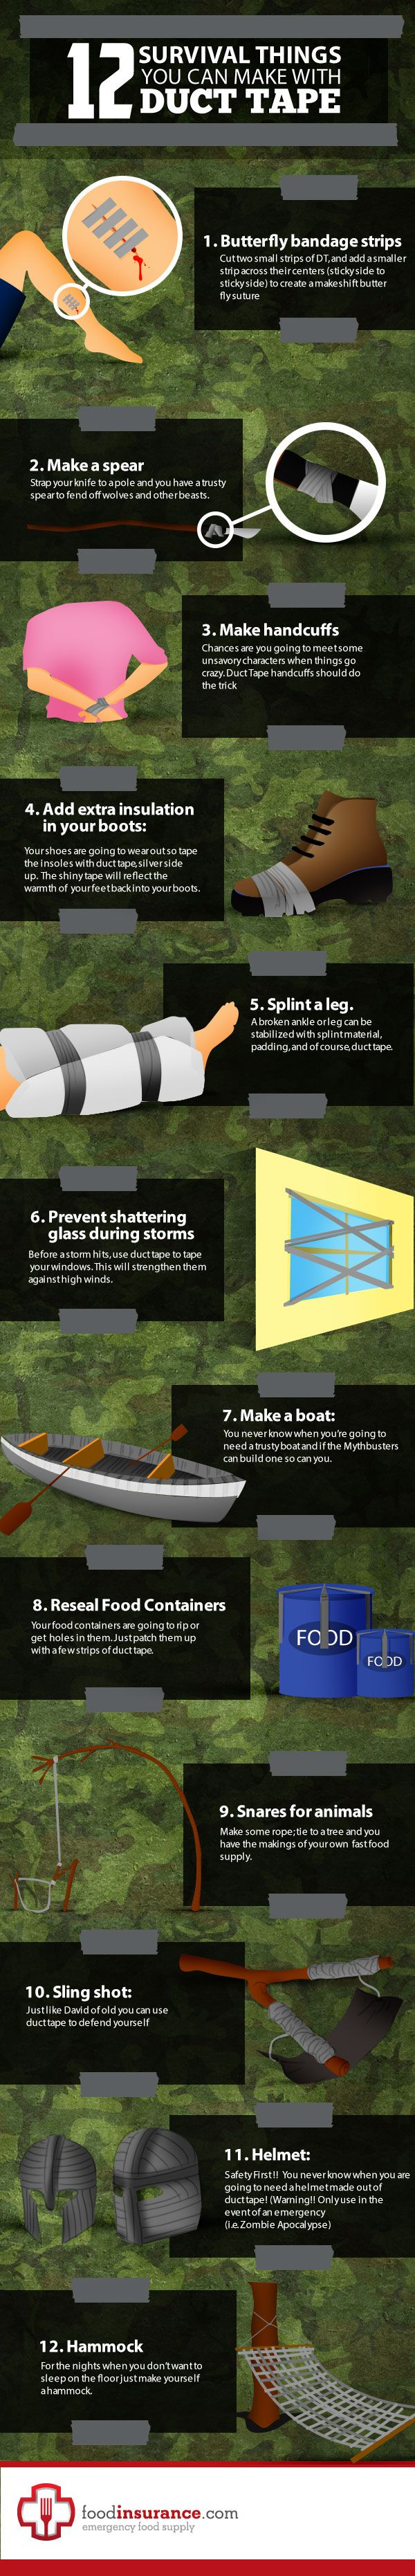 In this infografic you'll find 12 survival things you can do with duct tape. I don't know what they were thinking in #11 though.